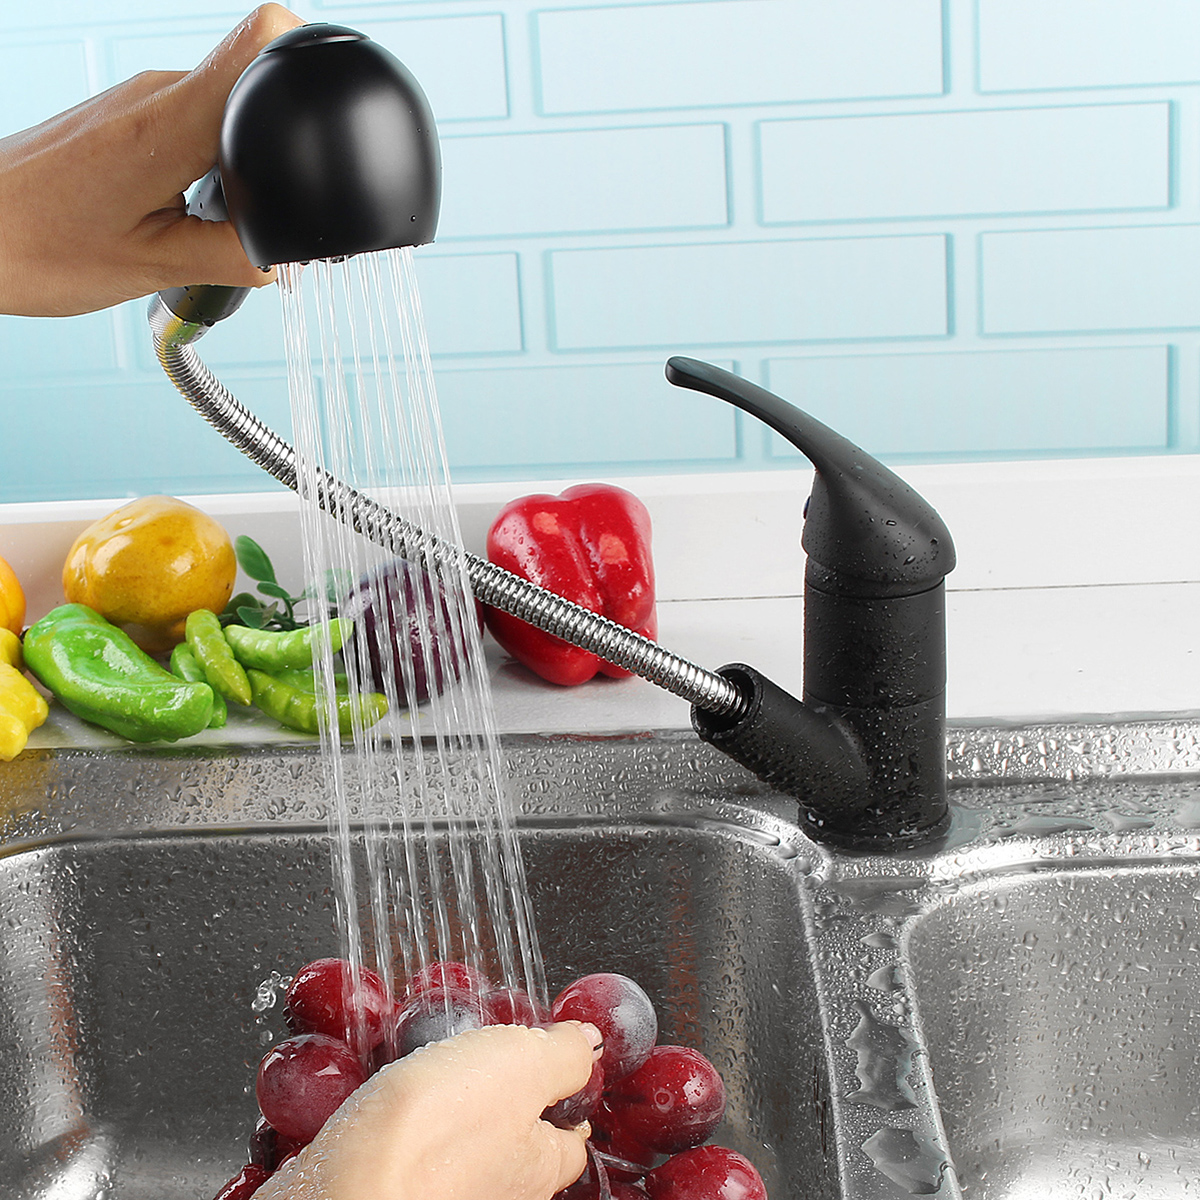 Modern Pull Out Spray Kitchen Faucet Brass Spout Sink Single Handle Mixer Faucet